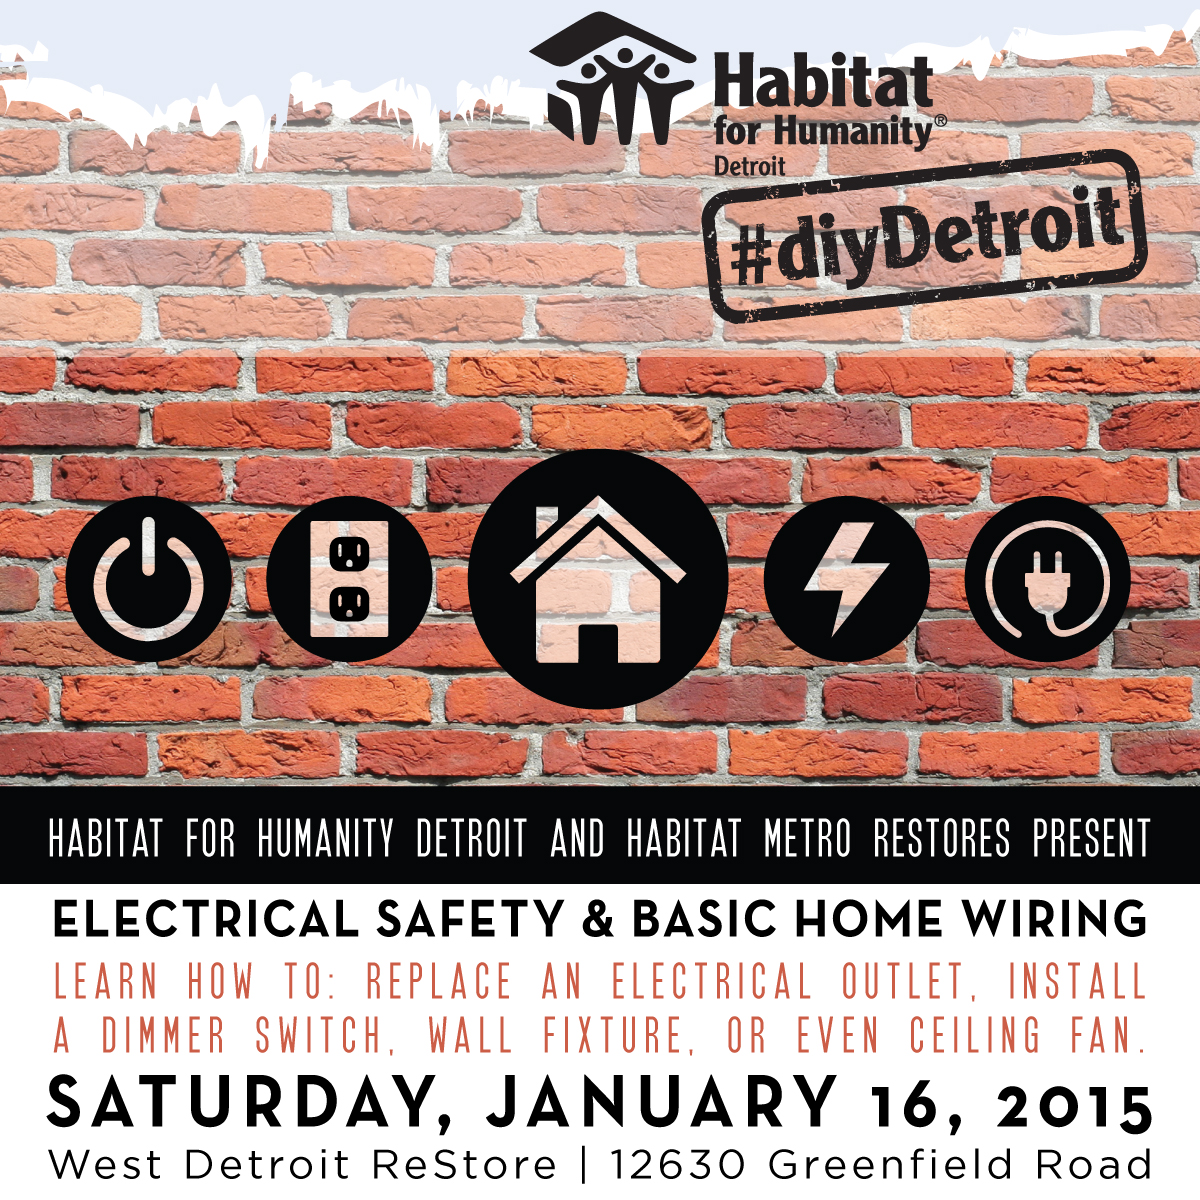 Diy Detroit Basic Electrical Tips For Your Home Habitat Wiring Join Us On January 16 As We Dive Into Some Safety And